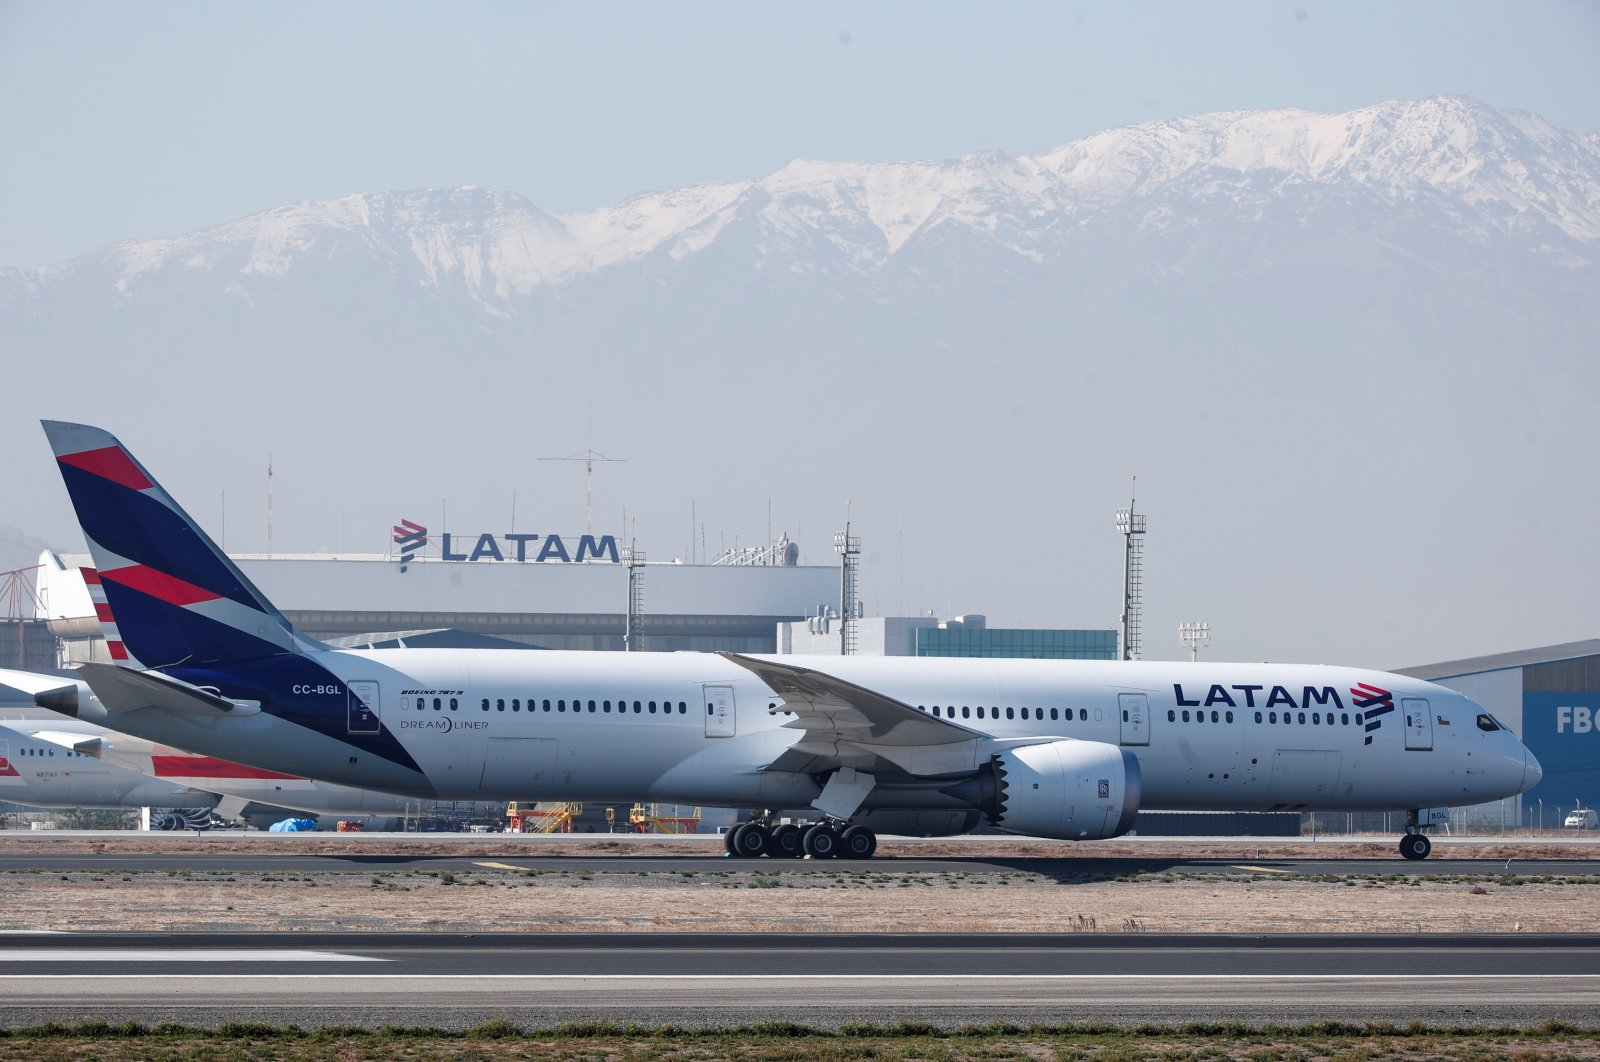 A Boeing 787-9 Dreamliner, tail number CC-BGL of LATAM Airlines at the Arturo Merino Benitez International Airport, Santiago, Chile, May 25, 2021. (EPA Photo)